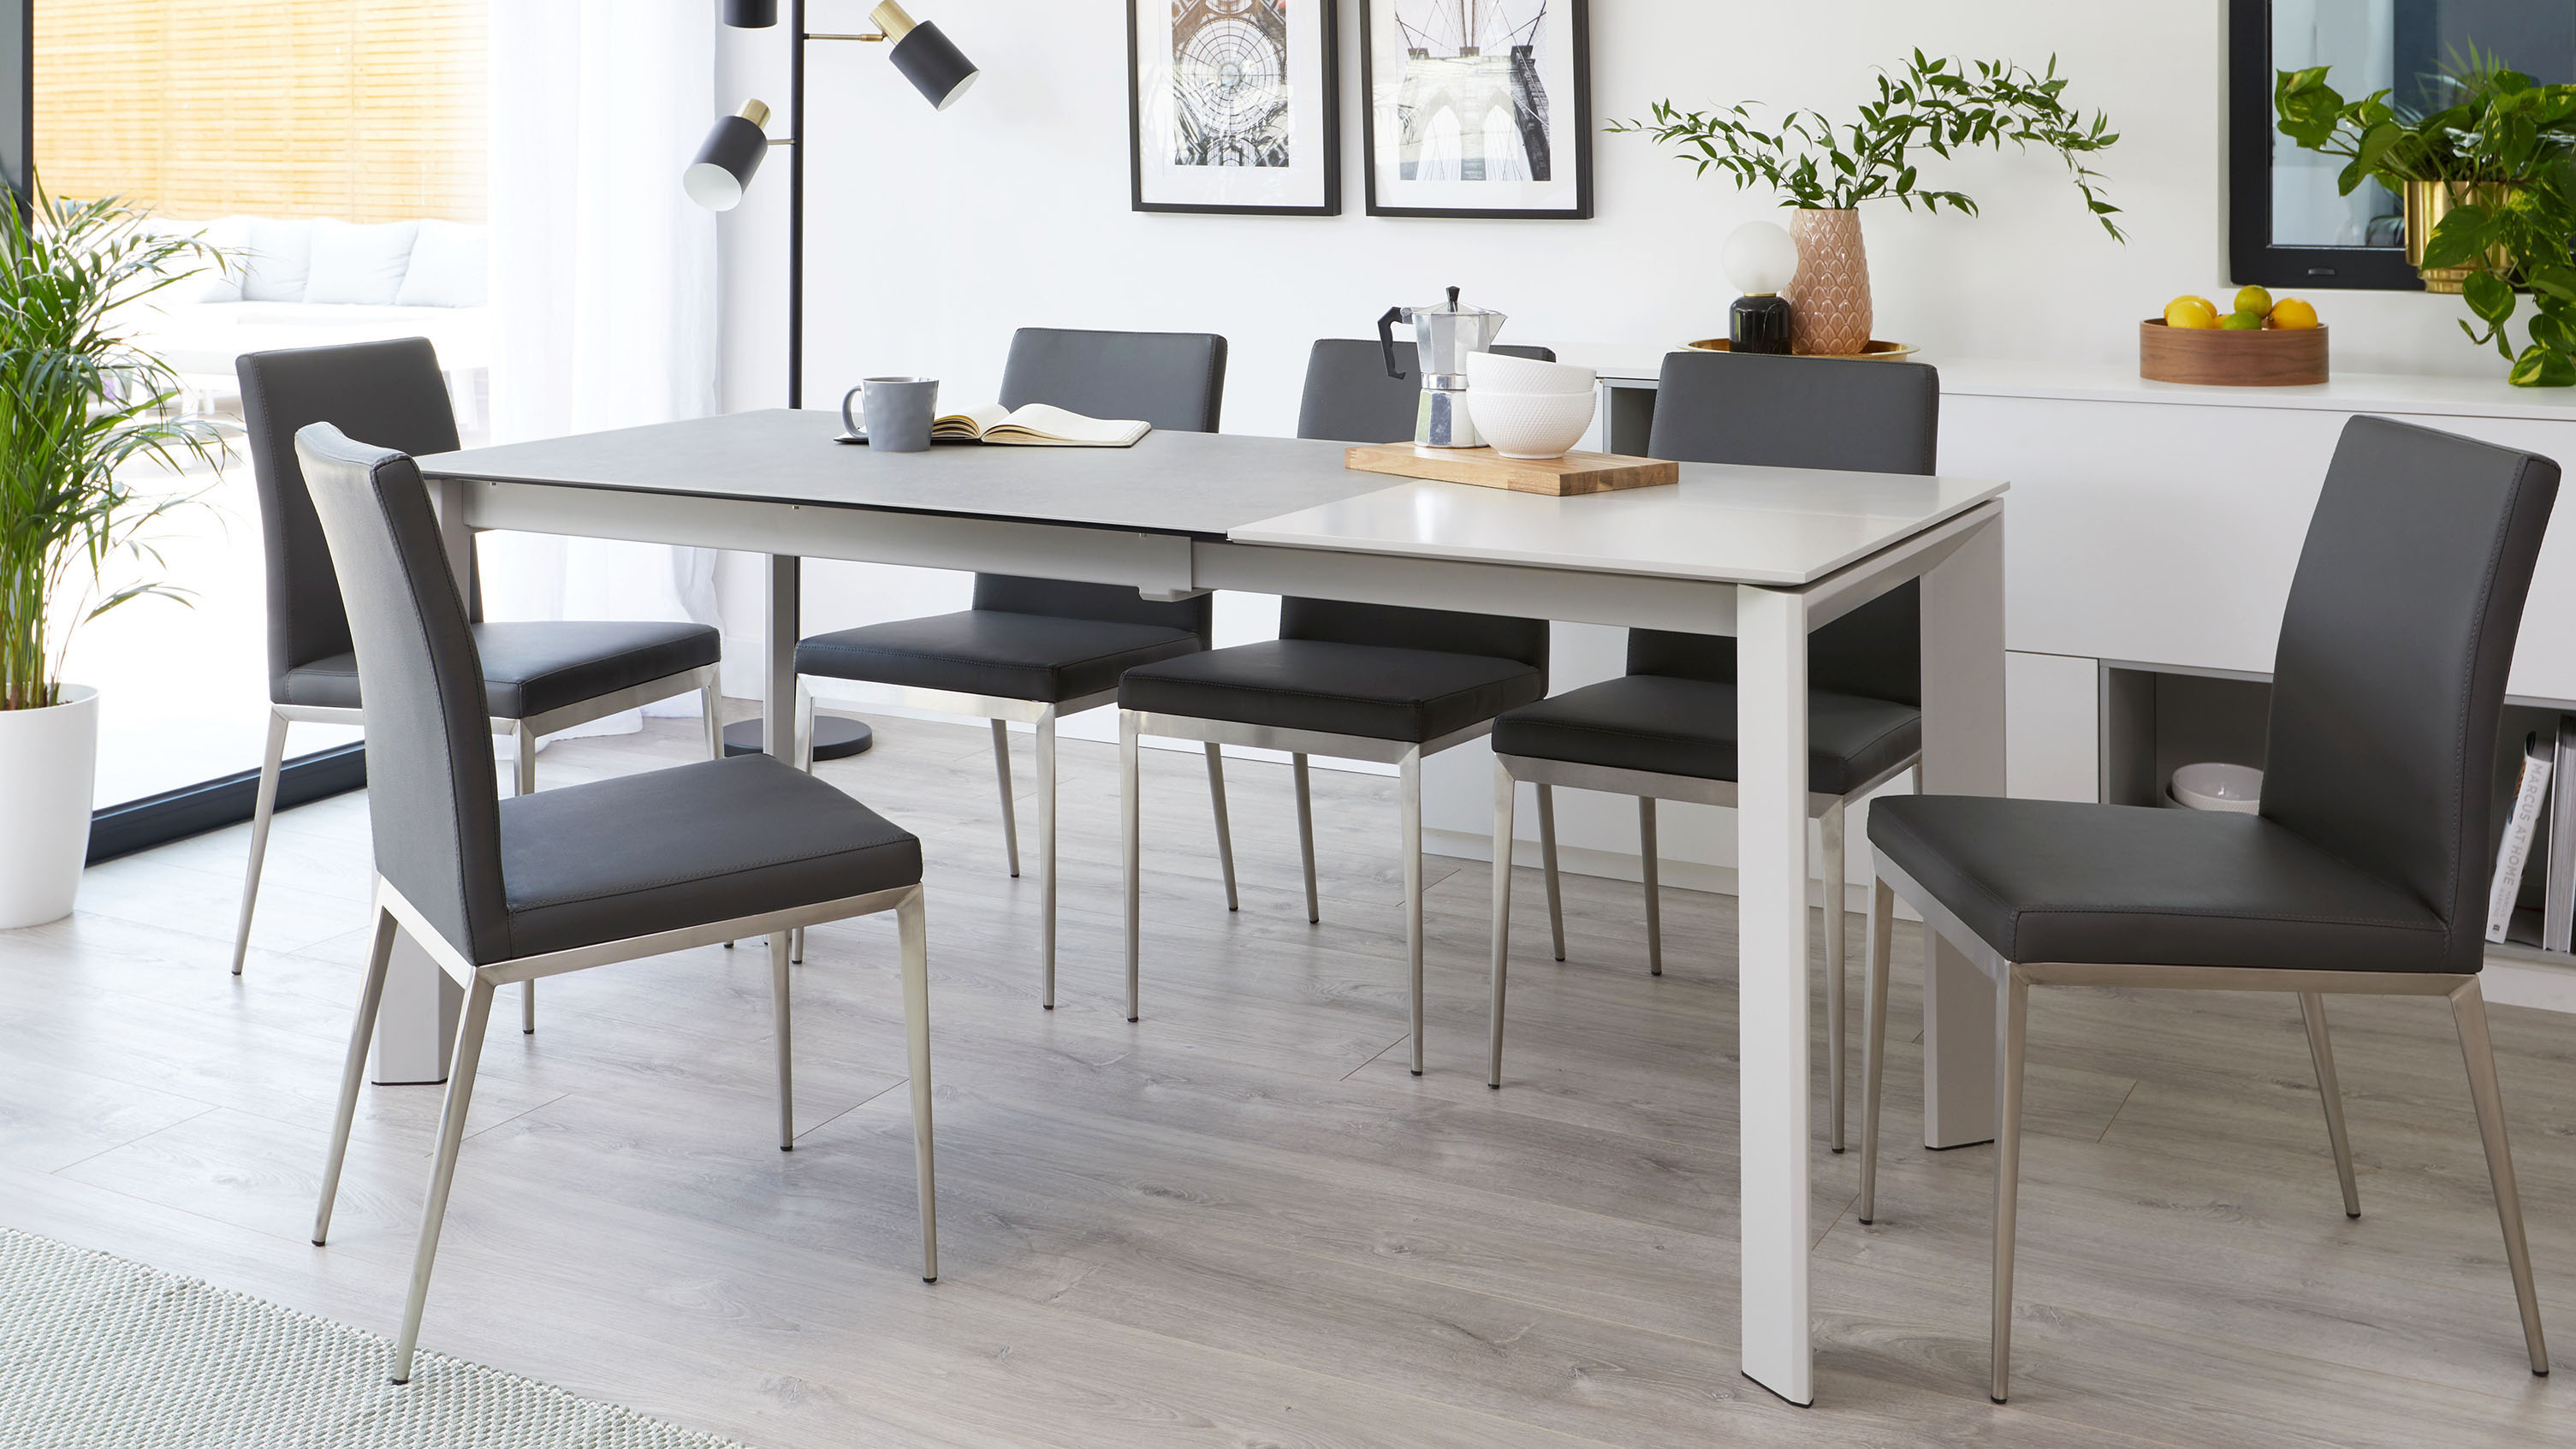 Louis Extending Light Grey Ceramic Dining Table | Danetti